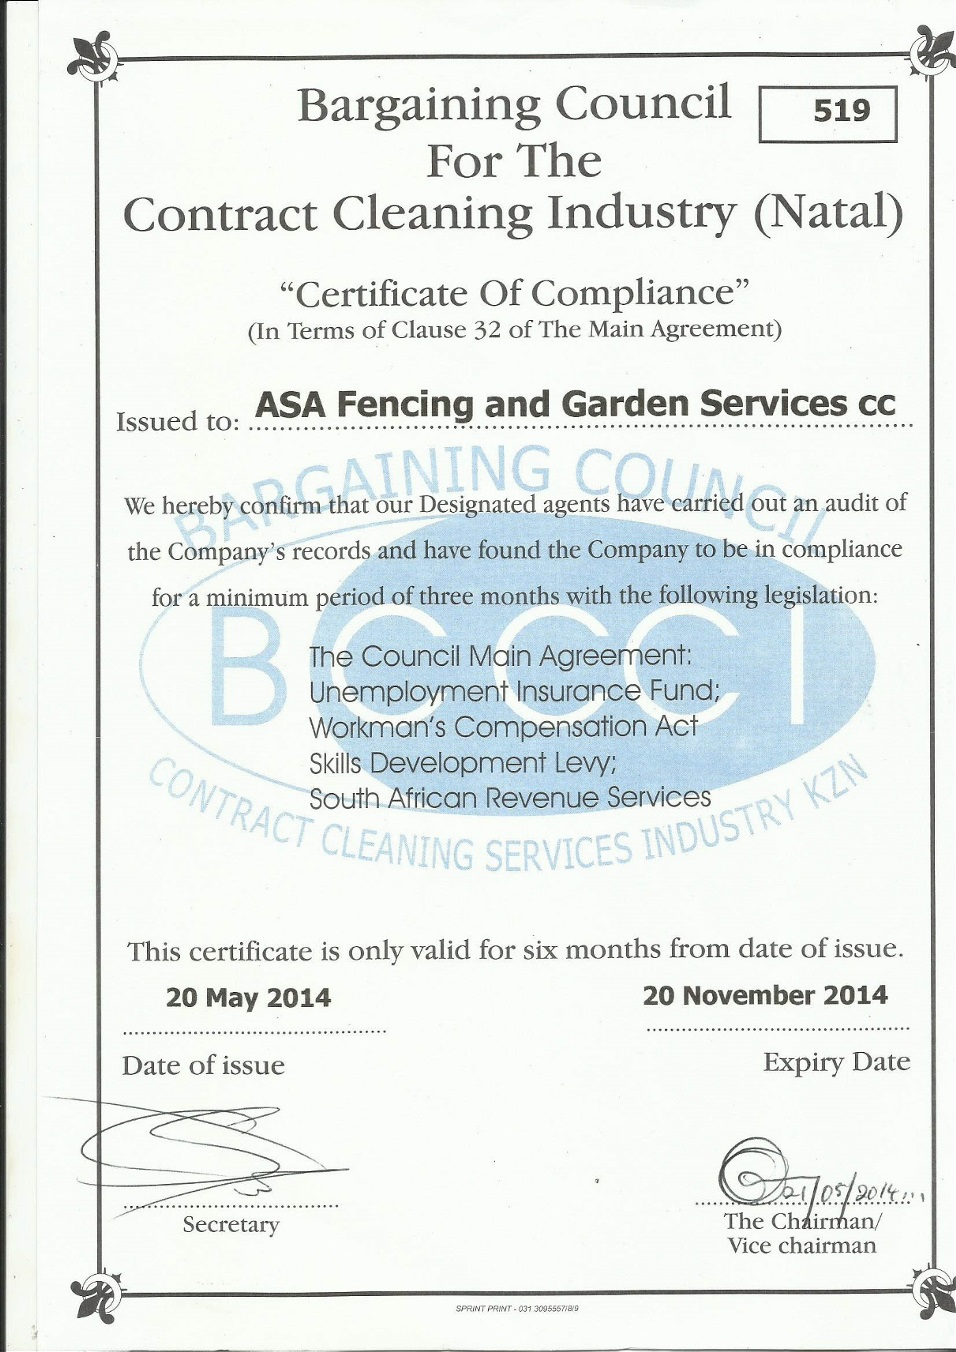 Bargaining Council Certificate Of Compliance